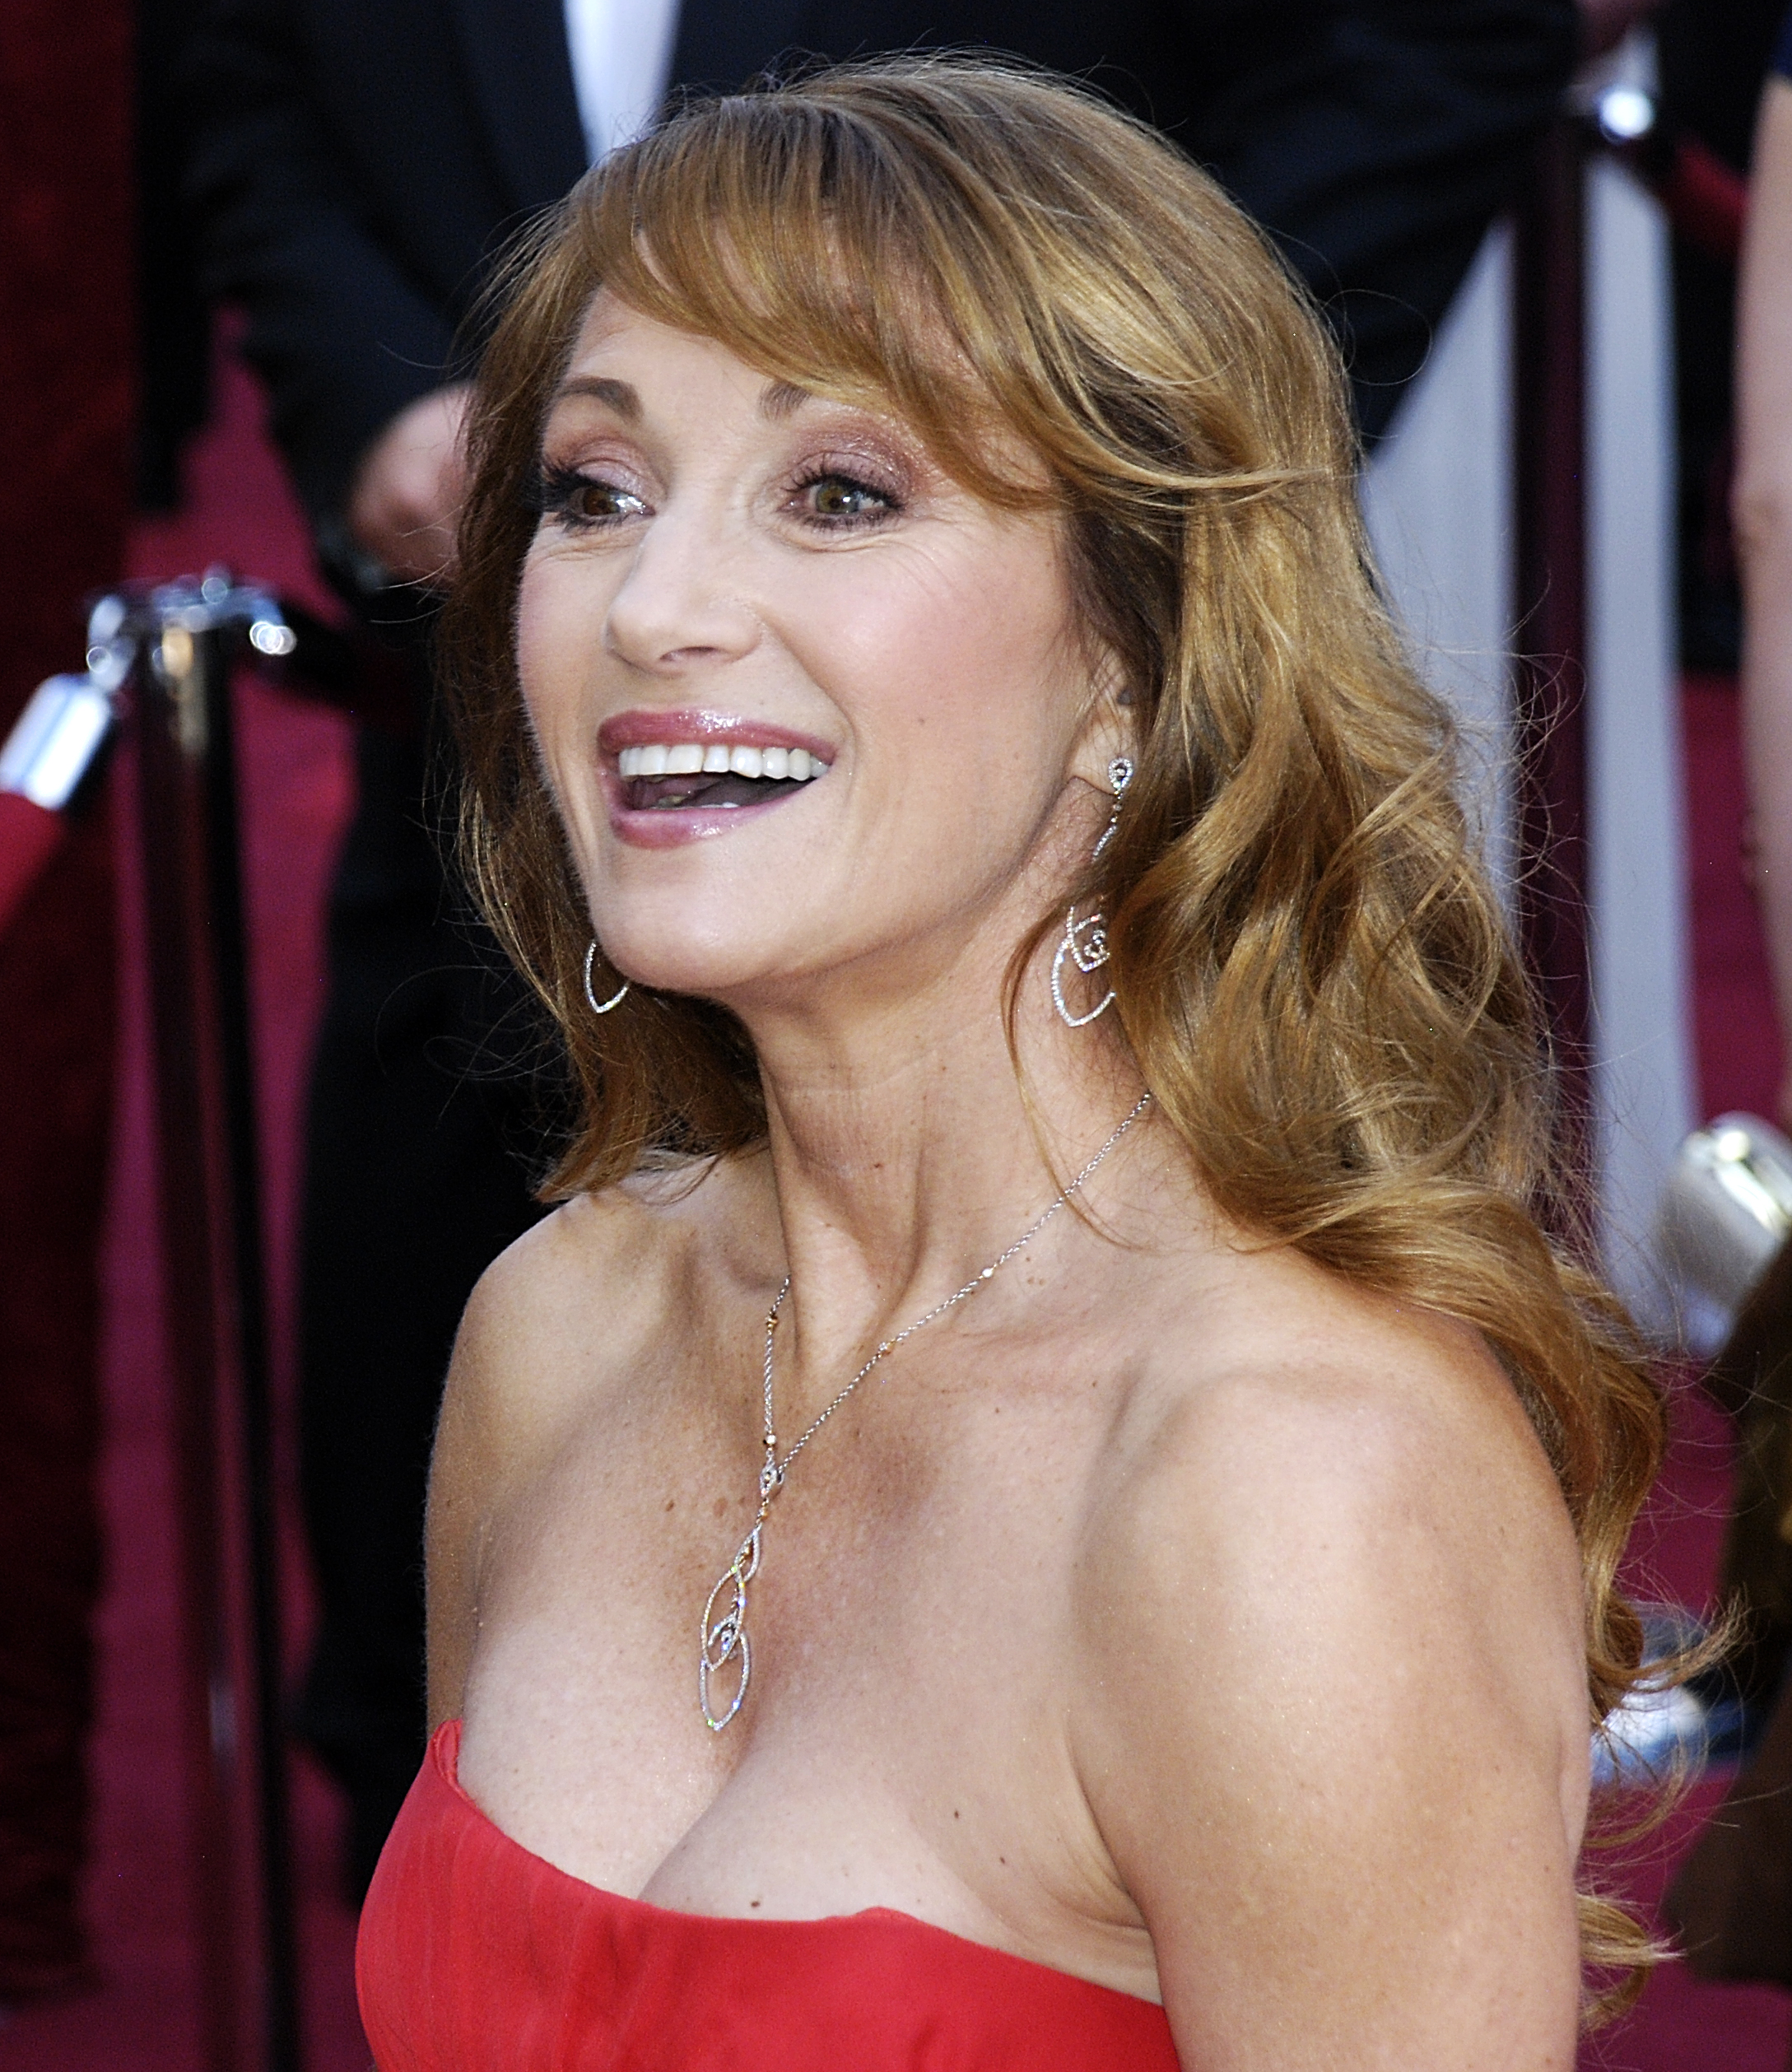 Description Jane Seymour 2010 Oscars.jpg